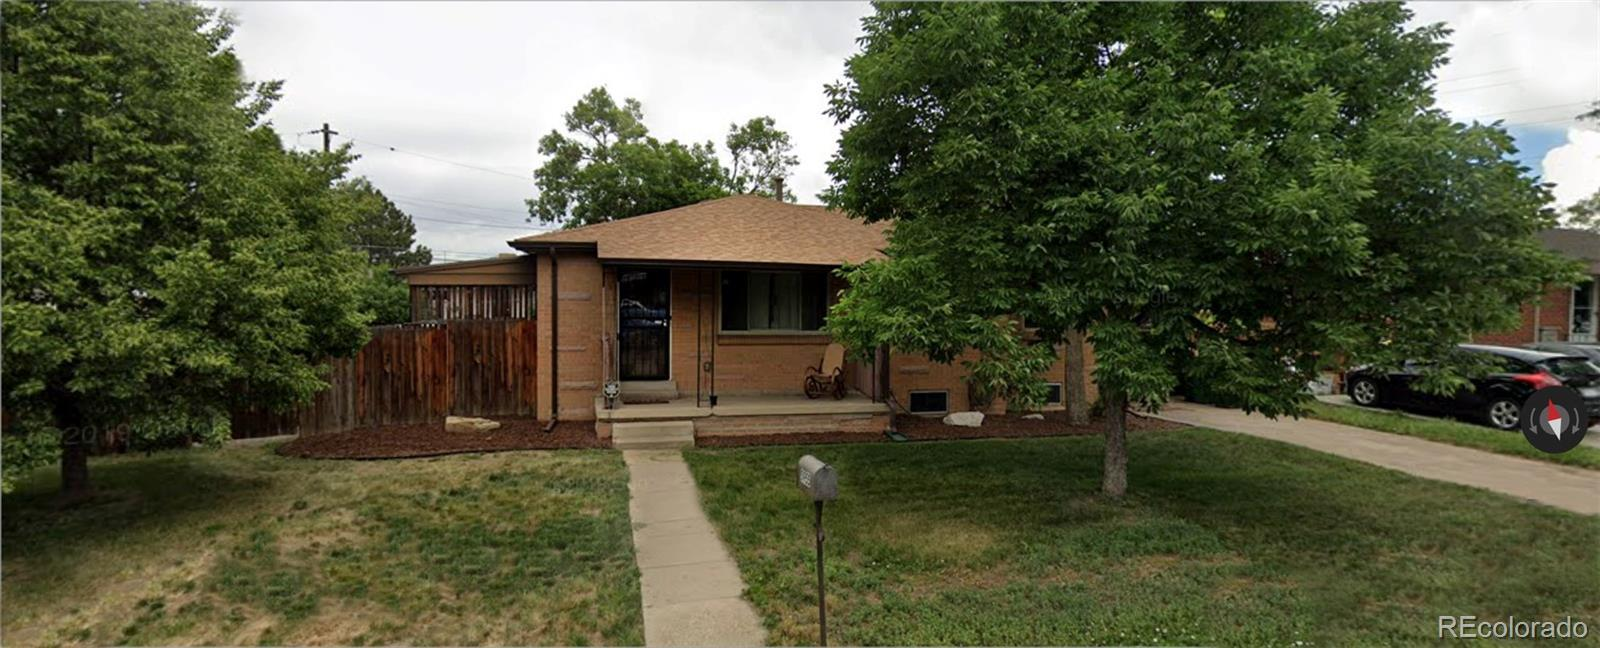 5955 W 5th Avenue, Lakewood, CO 80226 - #: 2559570